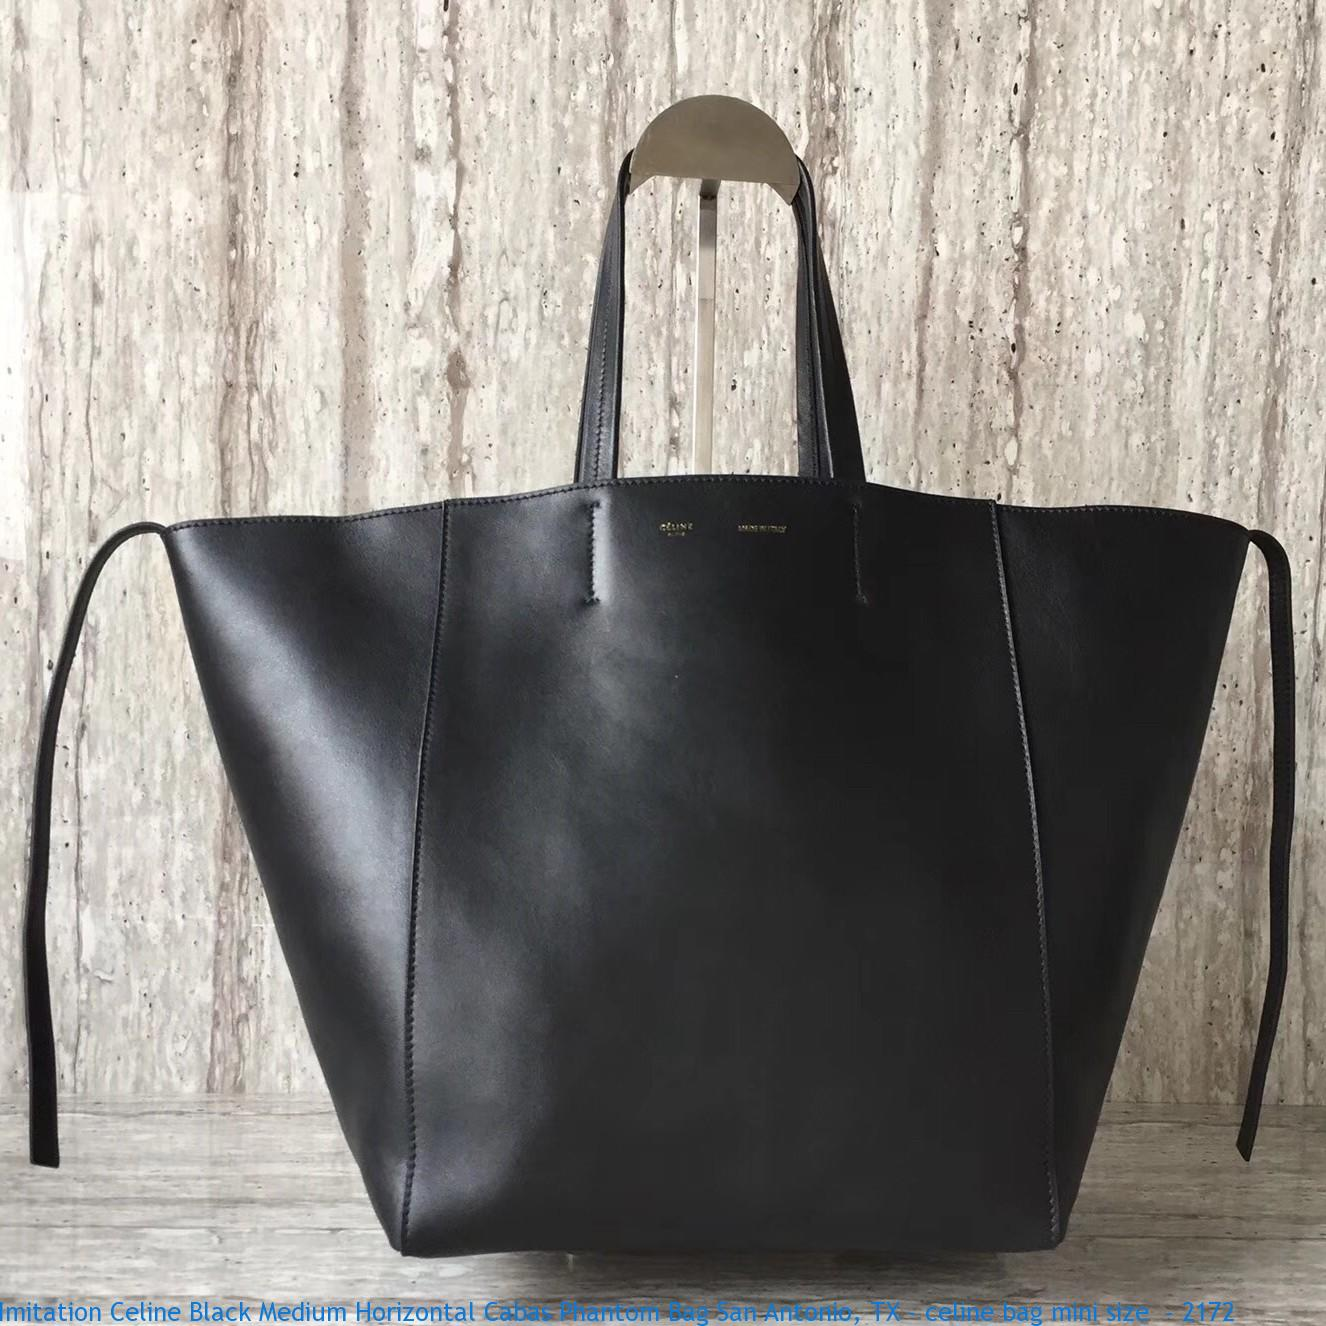 44fa490a256c Imitation Celine Black Medium Horizontal Cabas Phantom Bag San ...